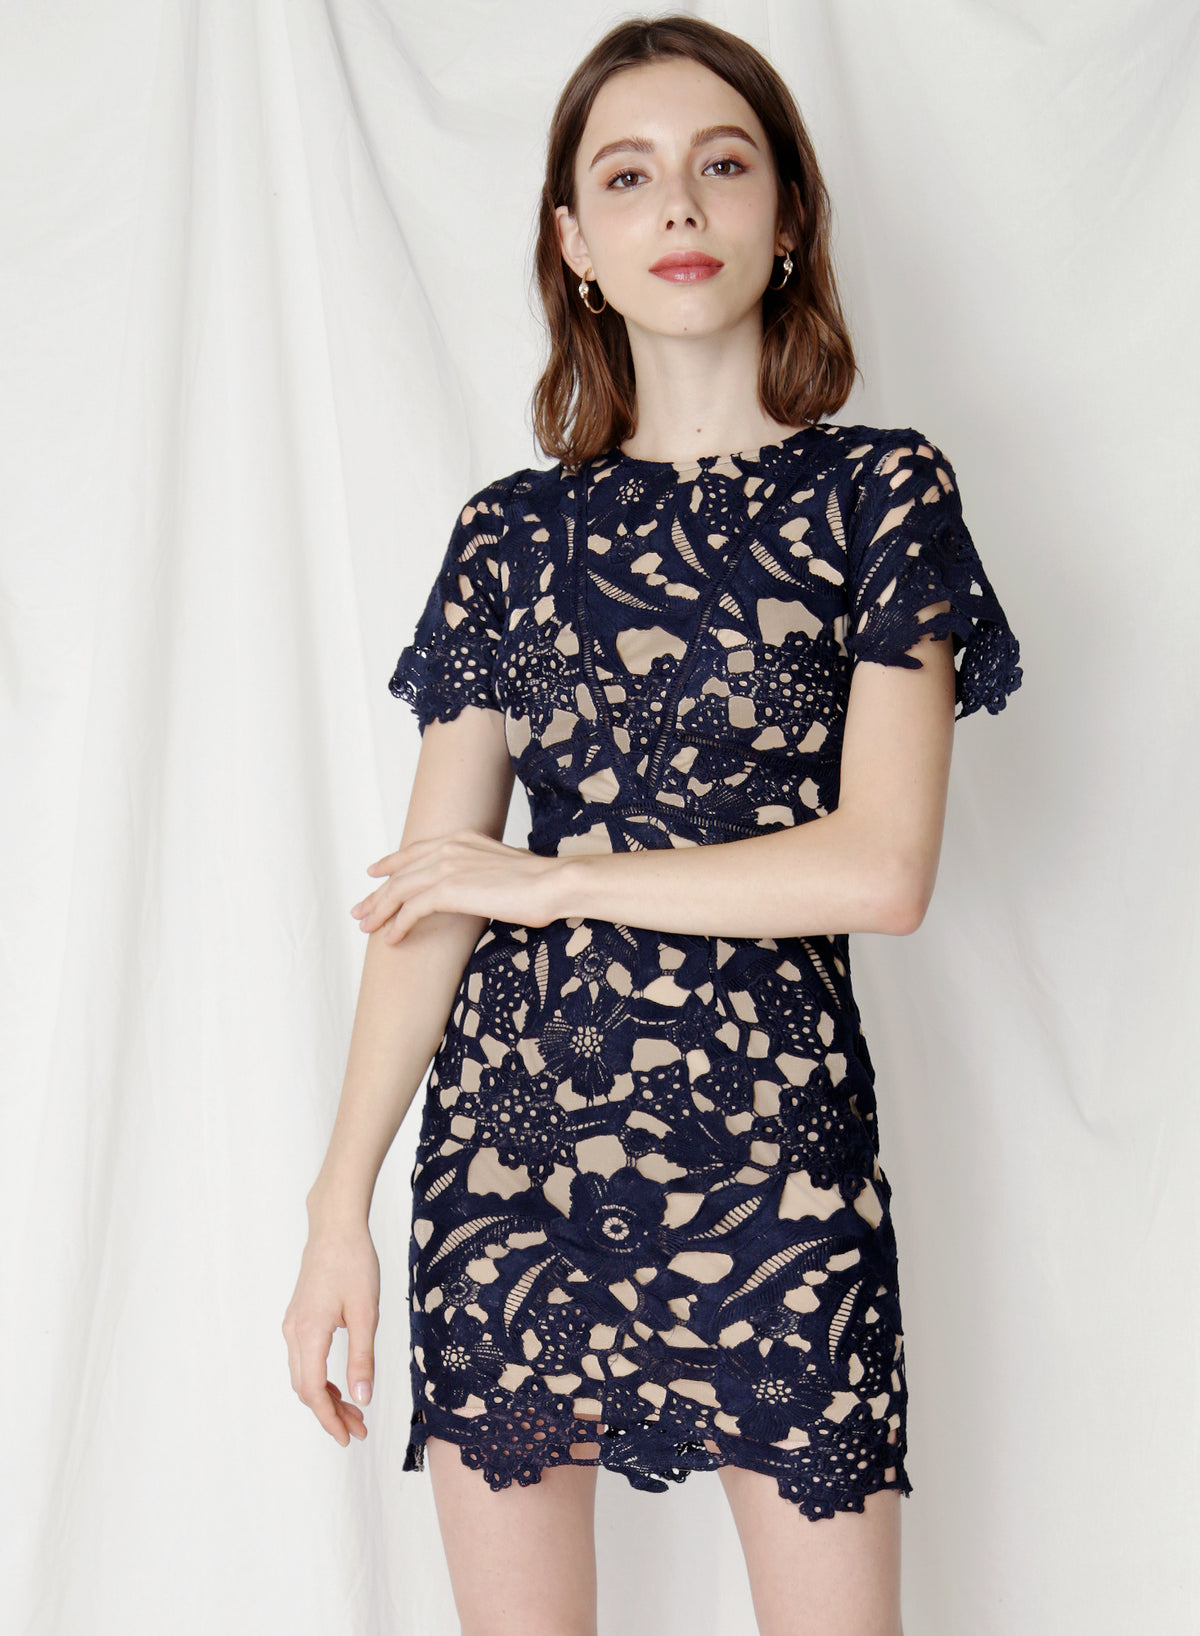 Flair Fitted Guipure Dress (Navy) at $ 42.50 only sold at And Well Dressed Online Fashion Store Singapore